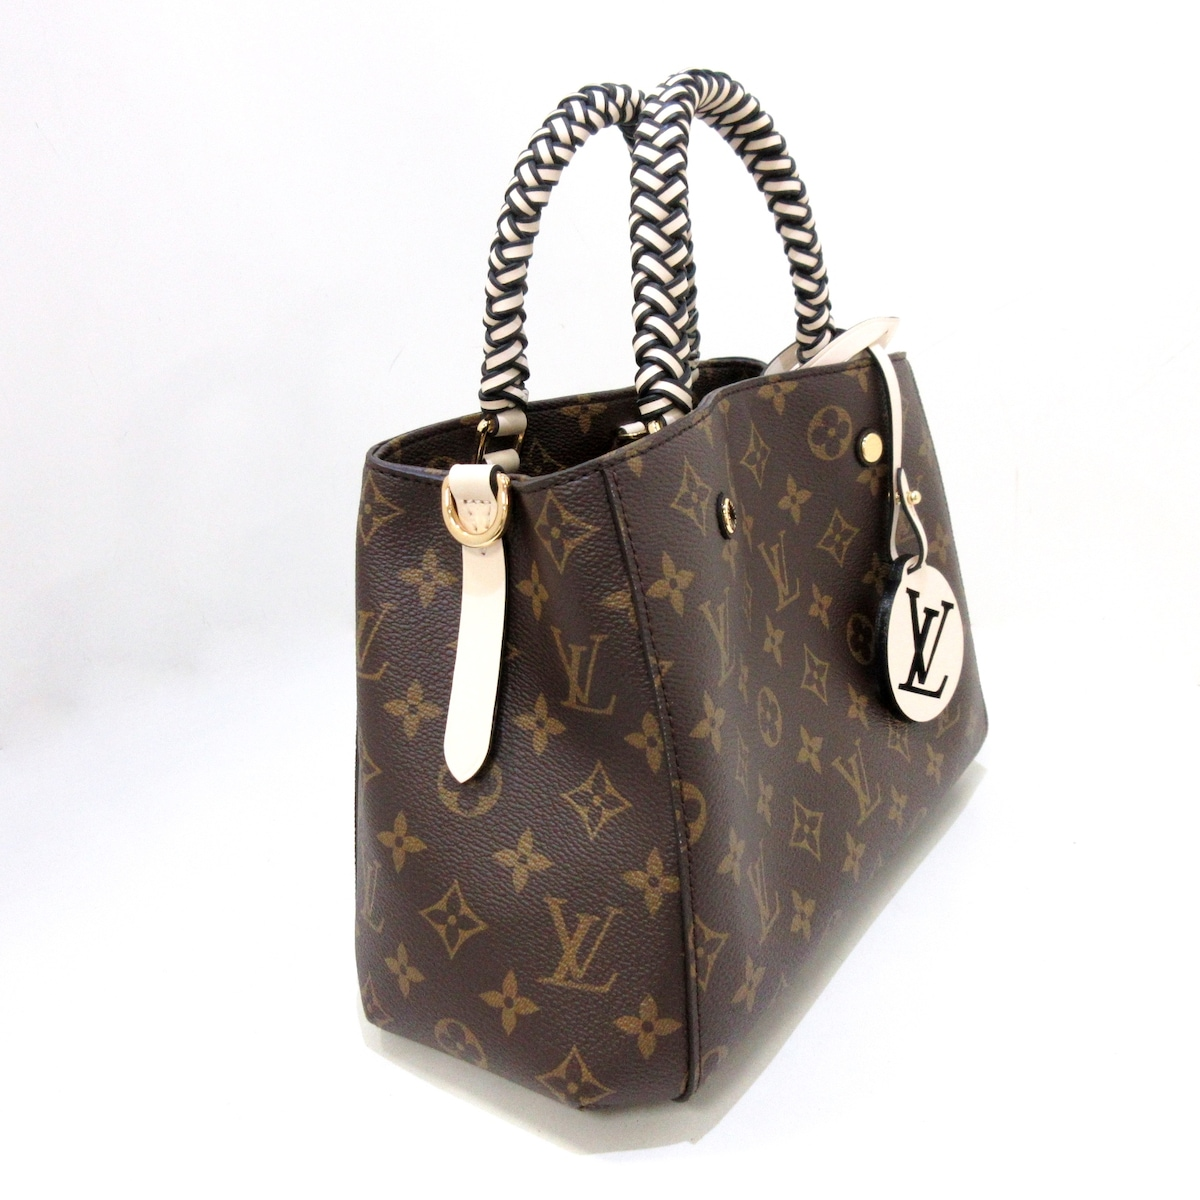 LOUIS VUITTON(ルイヴィトン)のモンテーニュBB